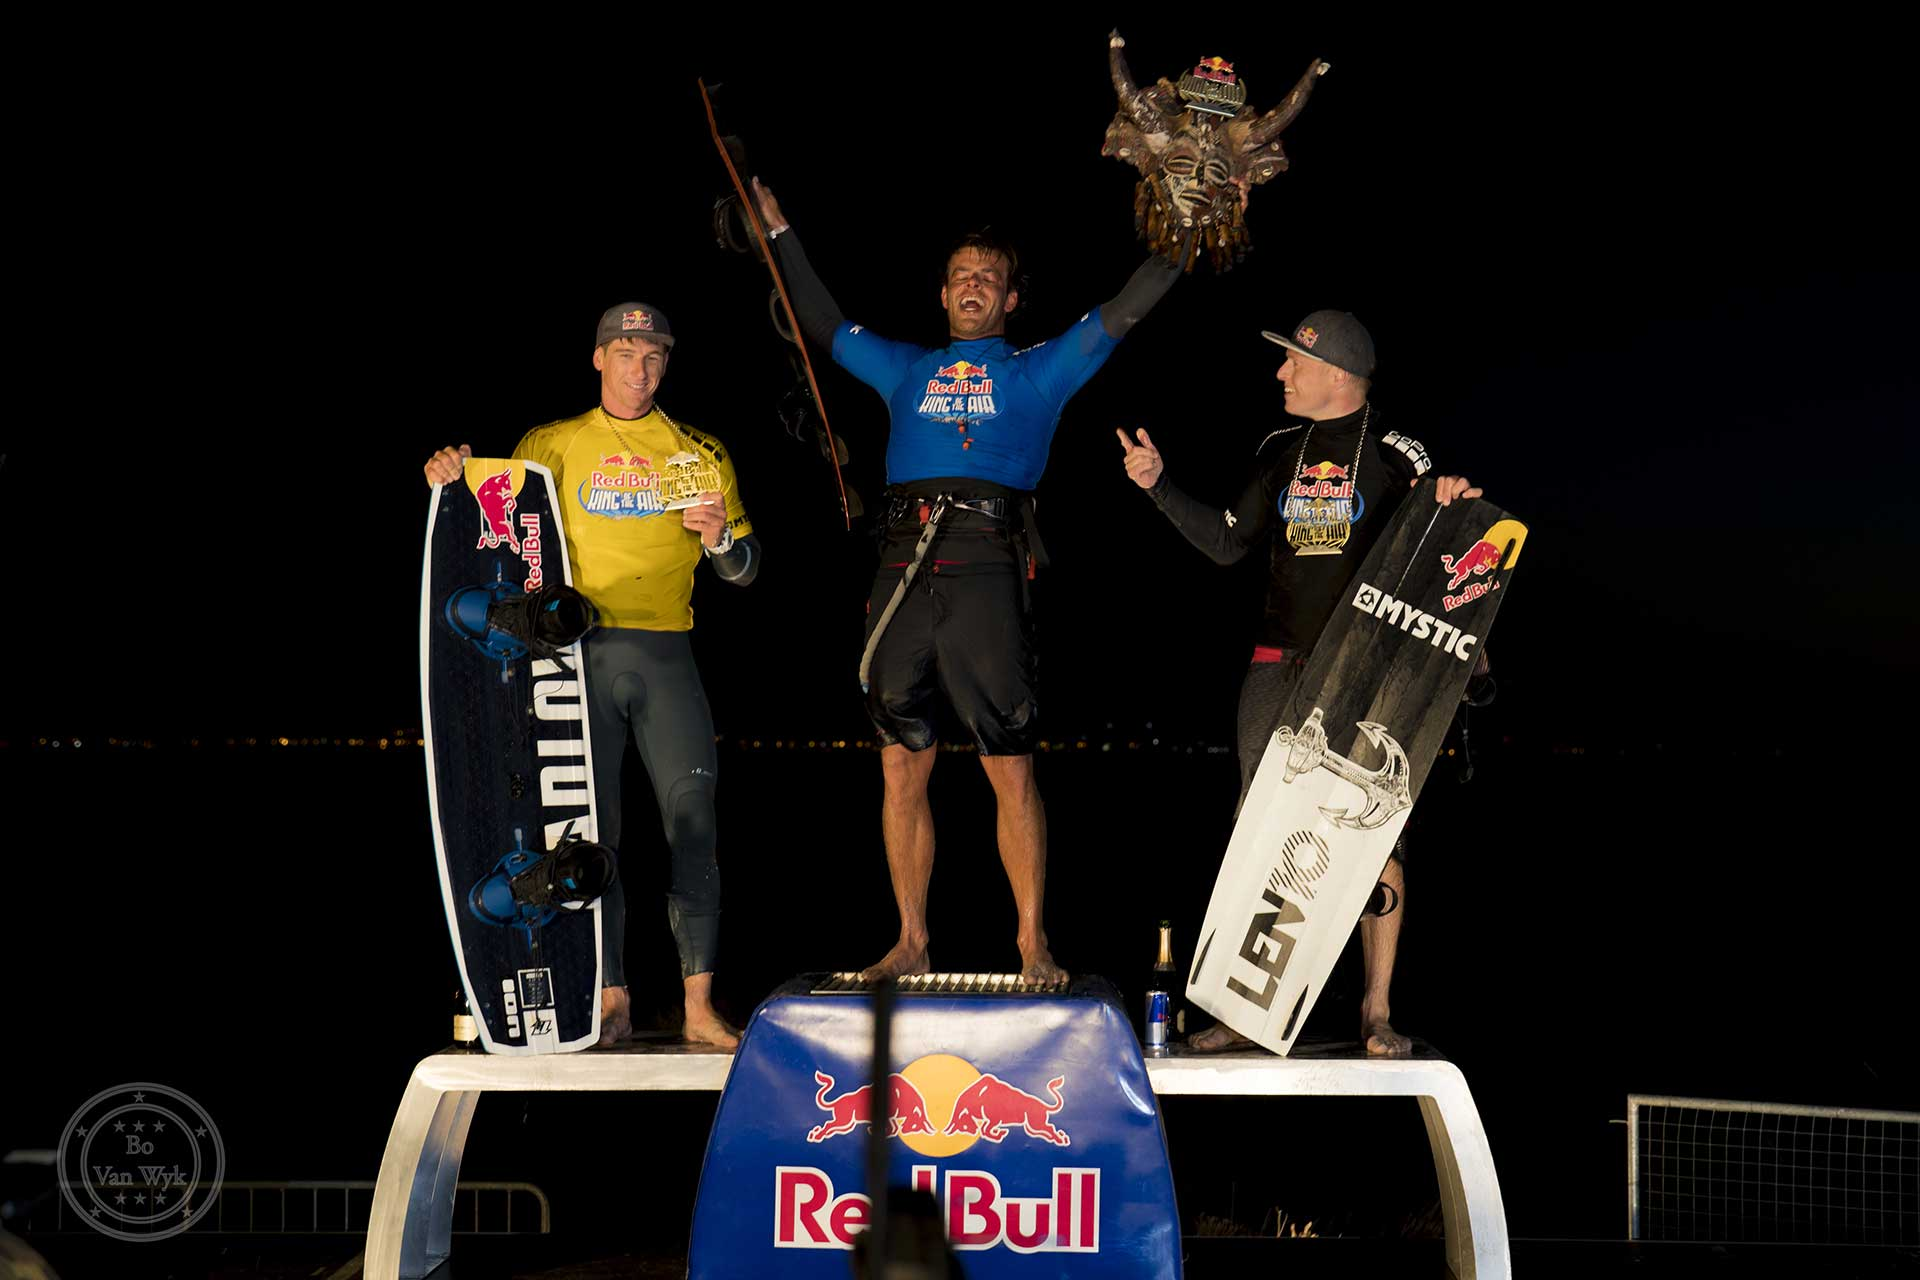 Red-Bull-King-of-the-Air-2017-Bo-Van-Wyk-72